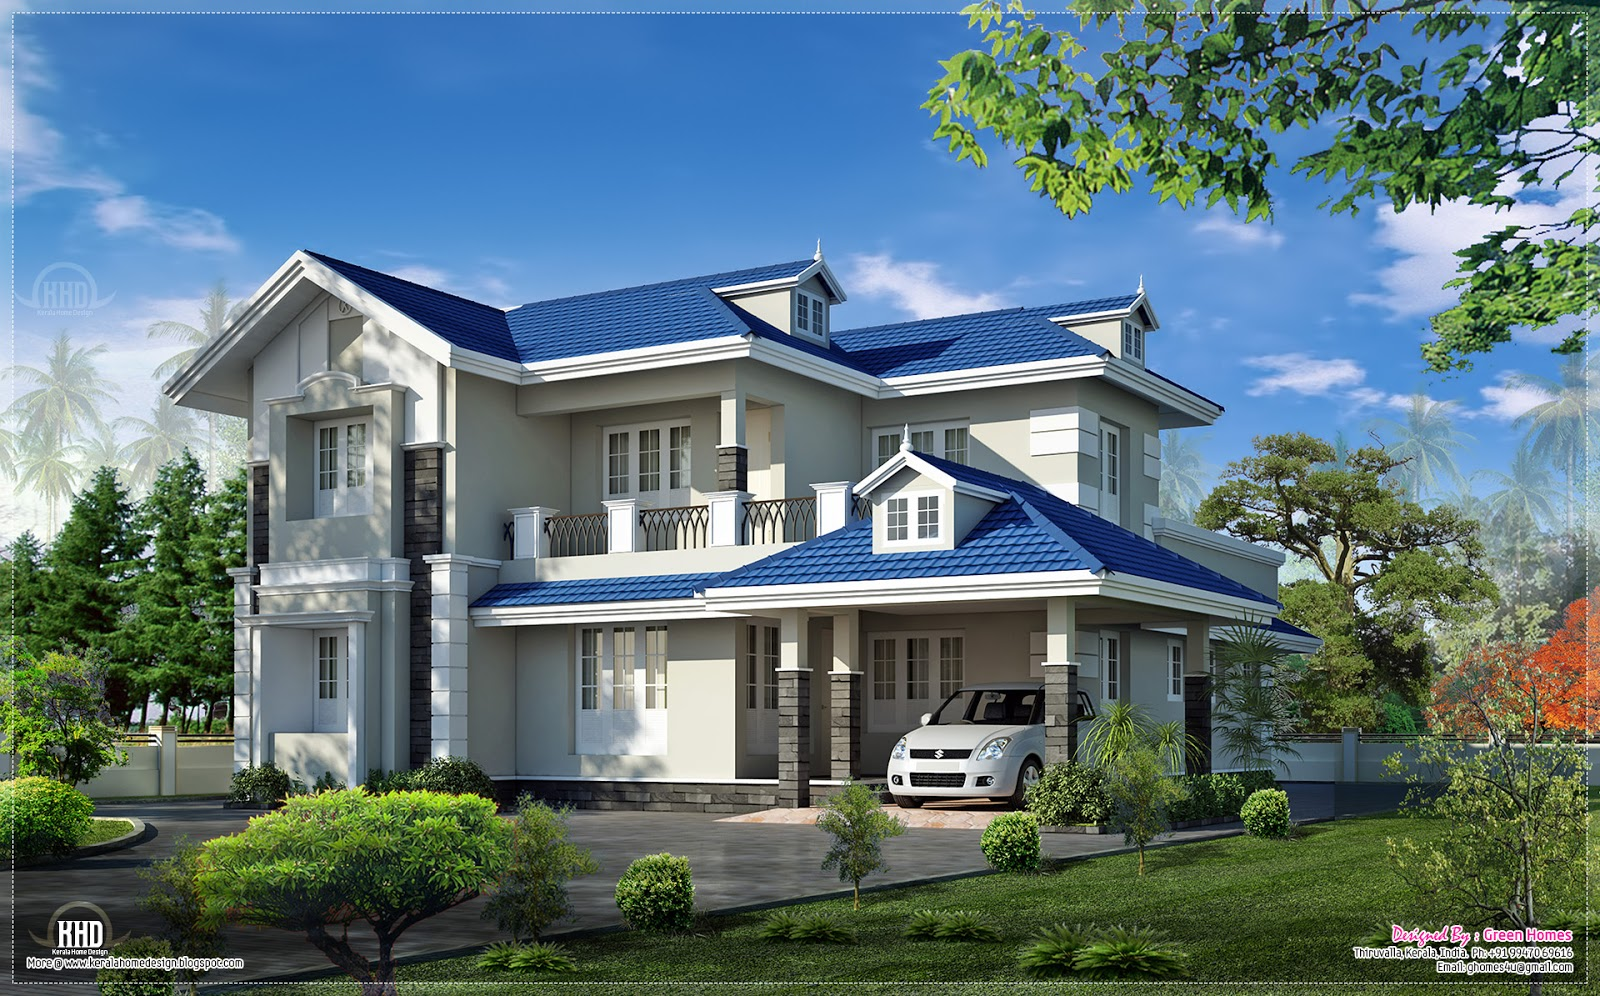 Beautiful 4 bedroom villa exterior kerala home design for 4 bedroom villa plans